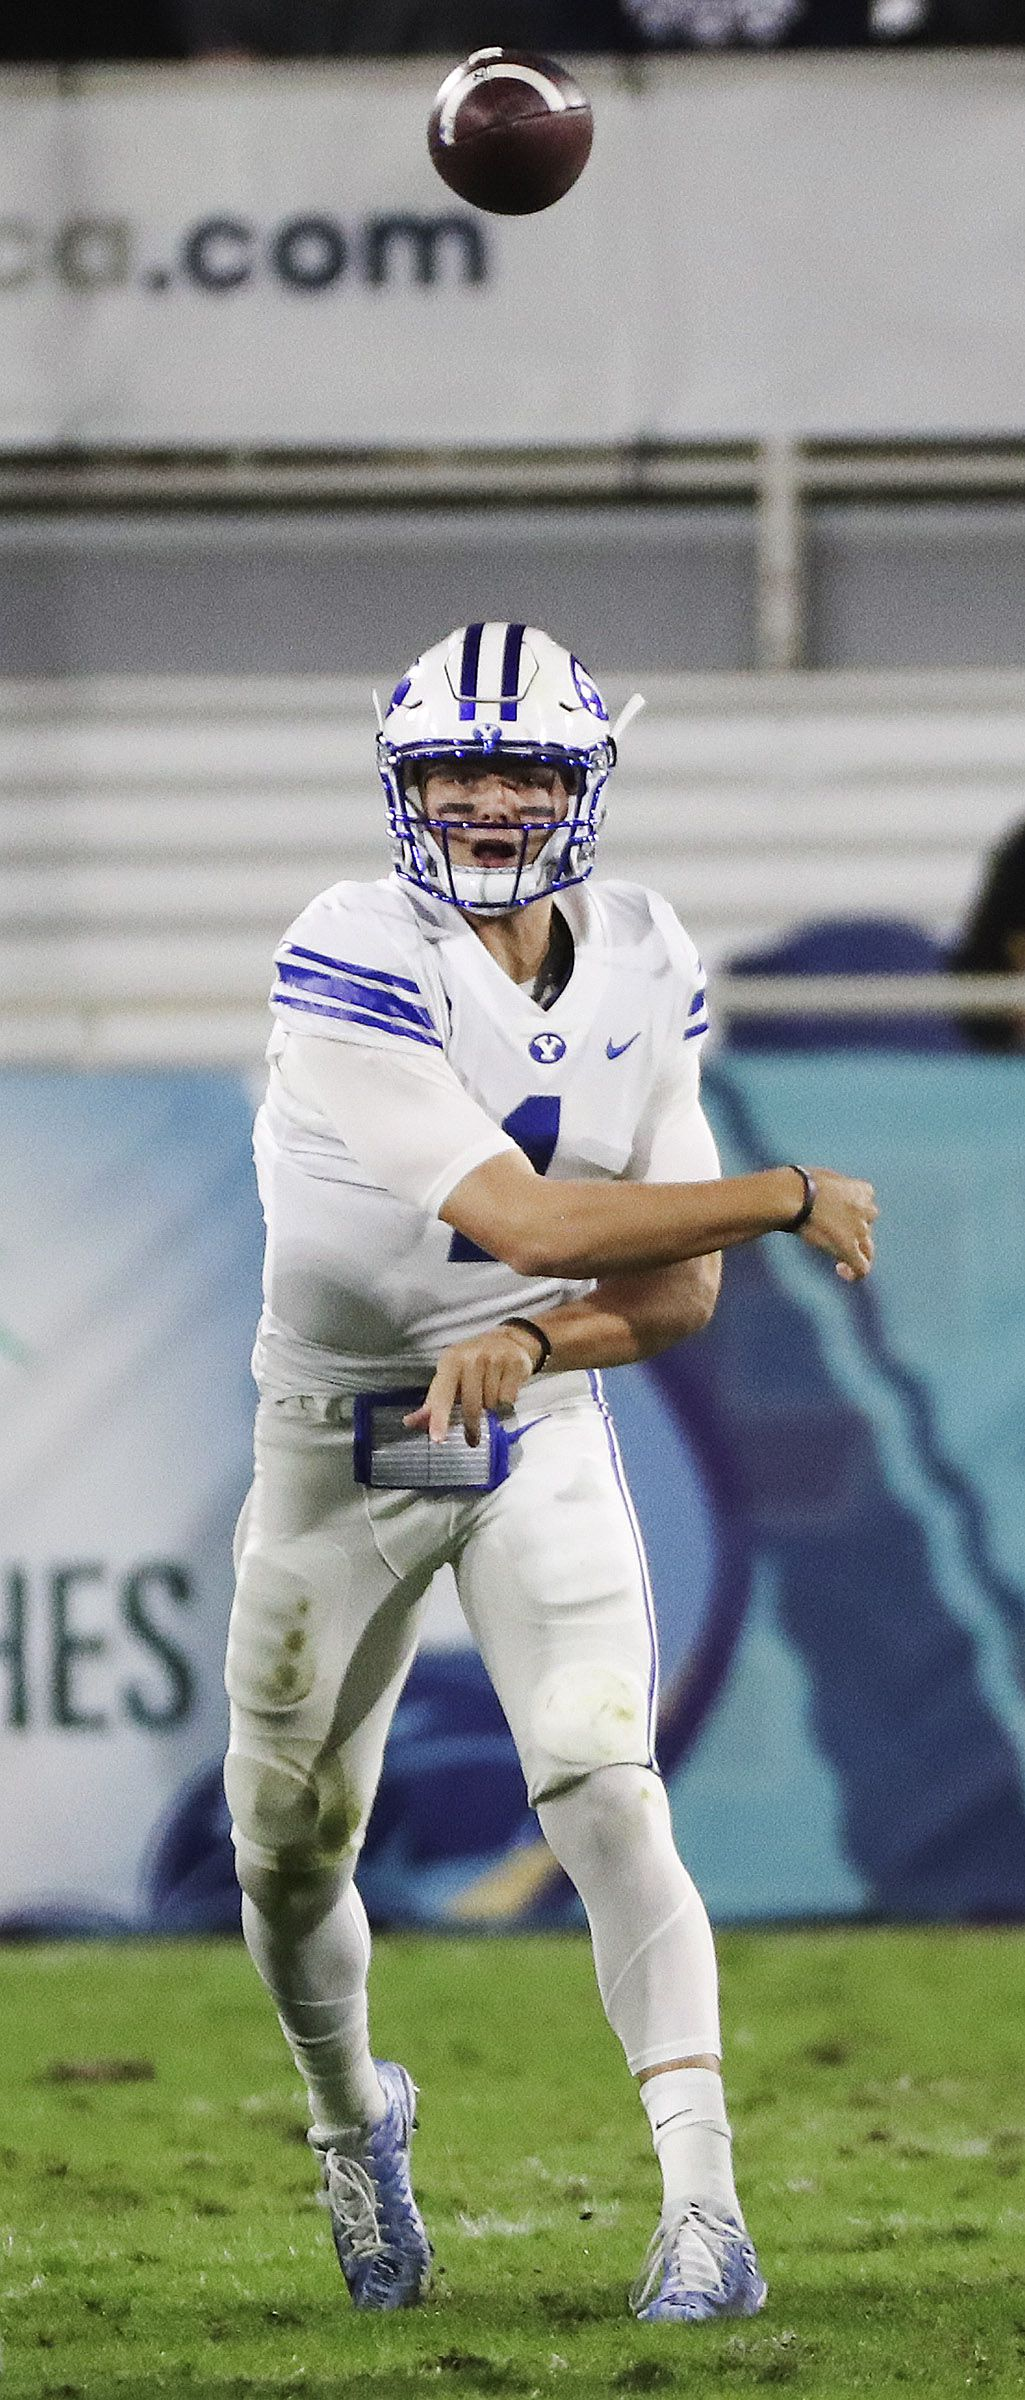 Brigham Young Cougars quarterback Zach Wilson (1) throws against the UCF Knights during the Boca Raton Bowl in Boca Raton, Fla., on Tuesday, Dec. 22, 2020.